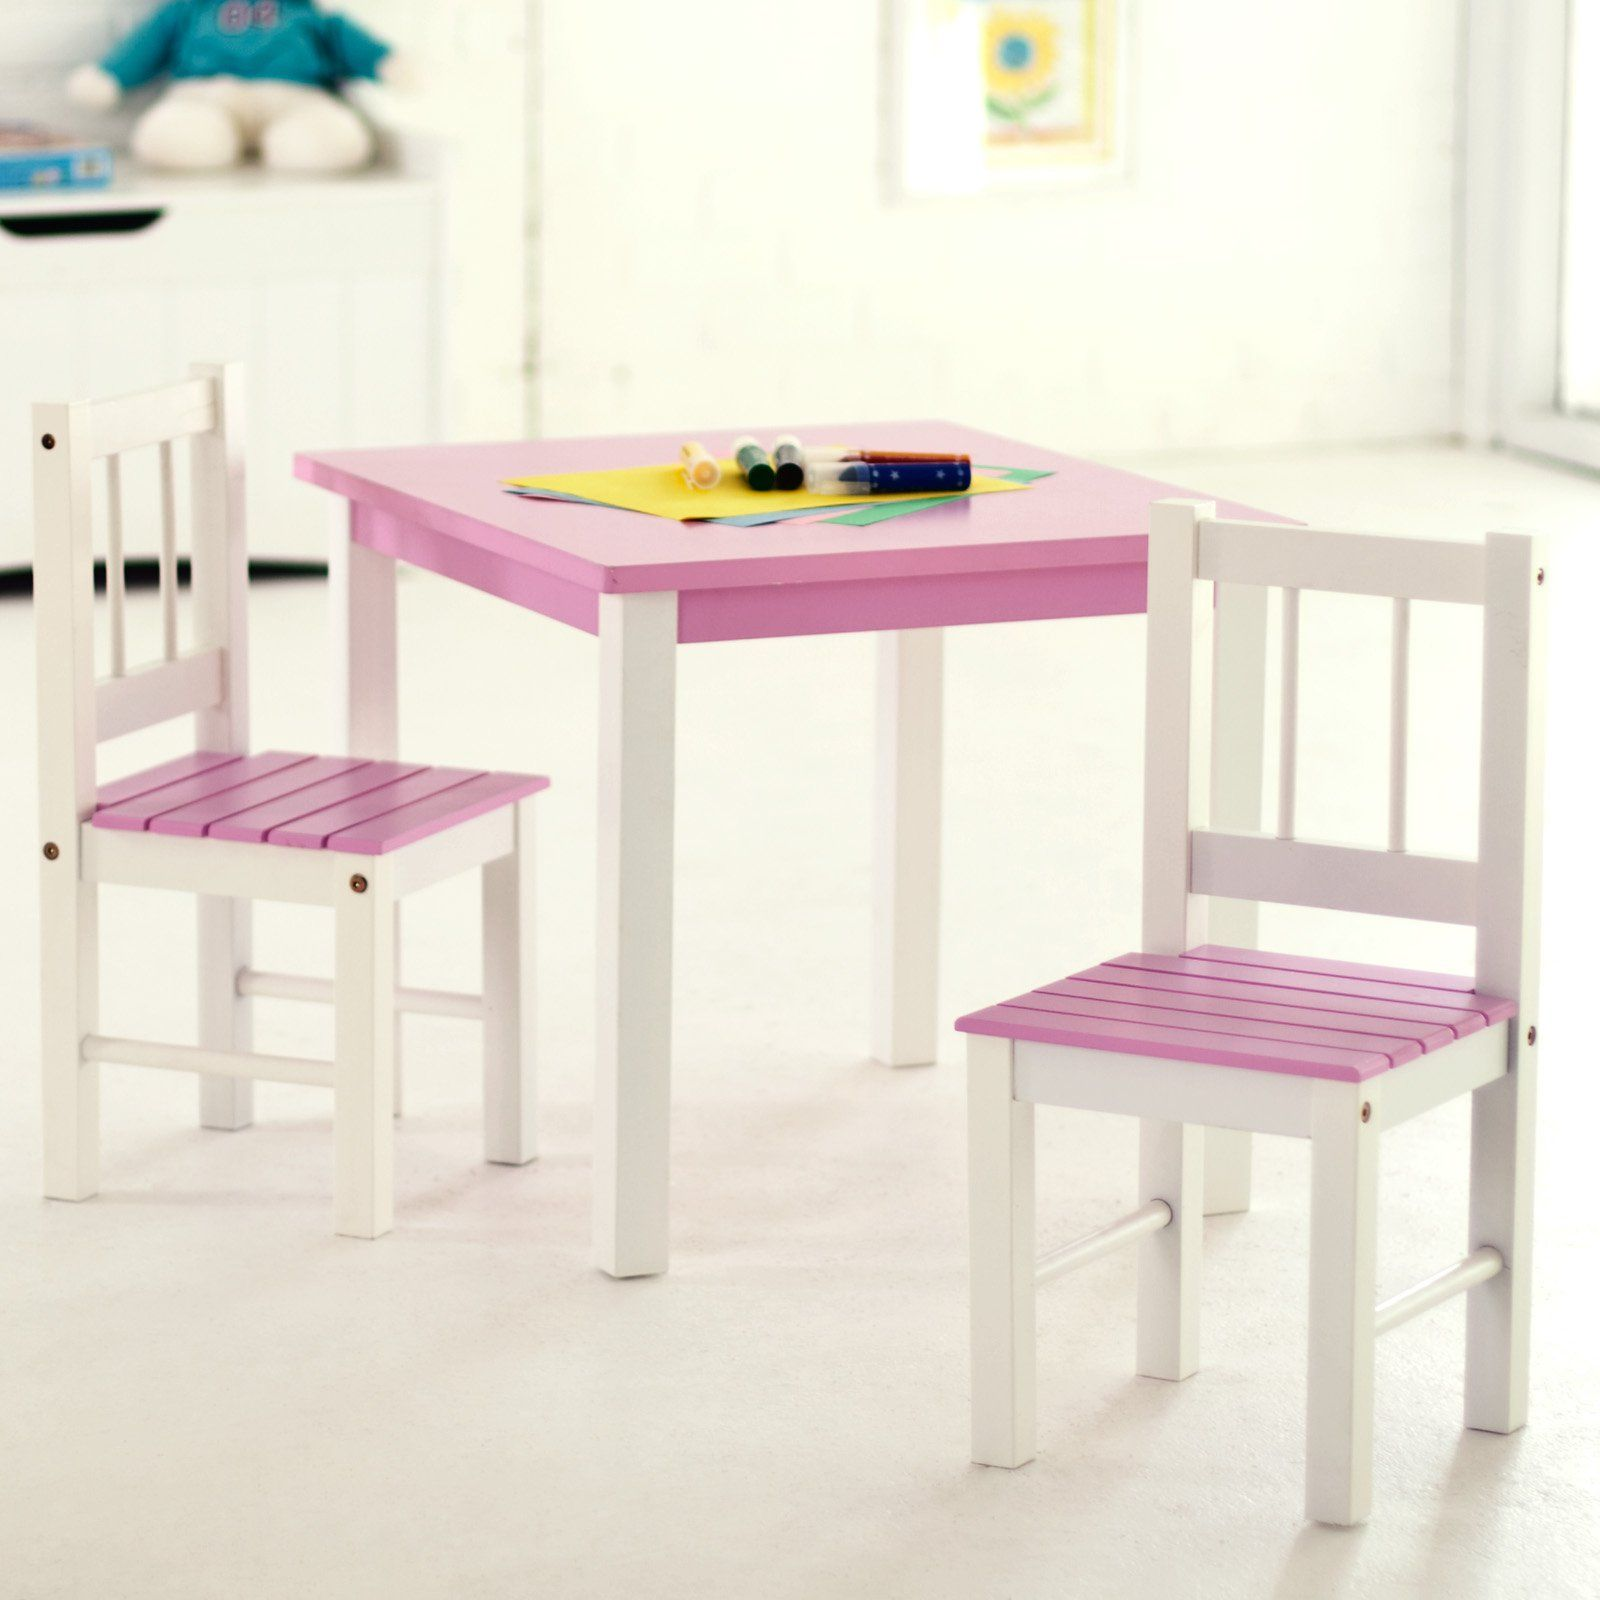 Lipper Kids Table and Chair Set Pink Table and Chair Set Hardwood Table Chair Set Kids Table Chairs Set  sc 1 st  Pinterest & Pin by Dawn Wyant on Kyndal christmas | Pinterest | Children ...